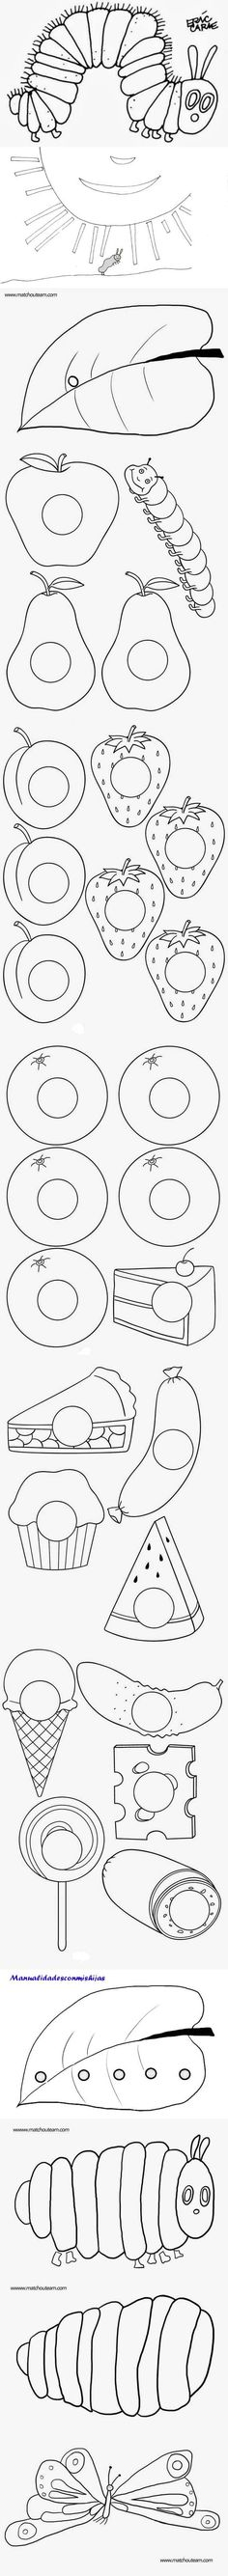 Hungry Caterpillar Coloring Page . Hungry Caterpillar Coloring Page . 8 Best Of Very Hungry Caterpillar Sequencing Eric Carle, Hungry Caterpillar Activities, Hungry Caterpillar Party, Educational Activities For Kids, Book Activities, Creative Curriculum, Butterfly Crafts, Conte, Book Crafts